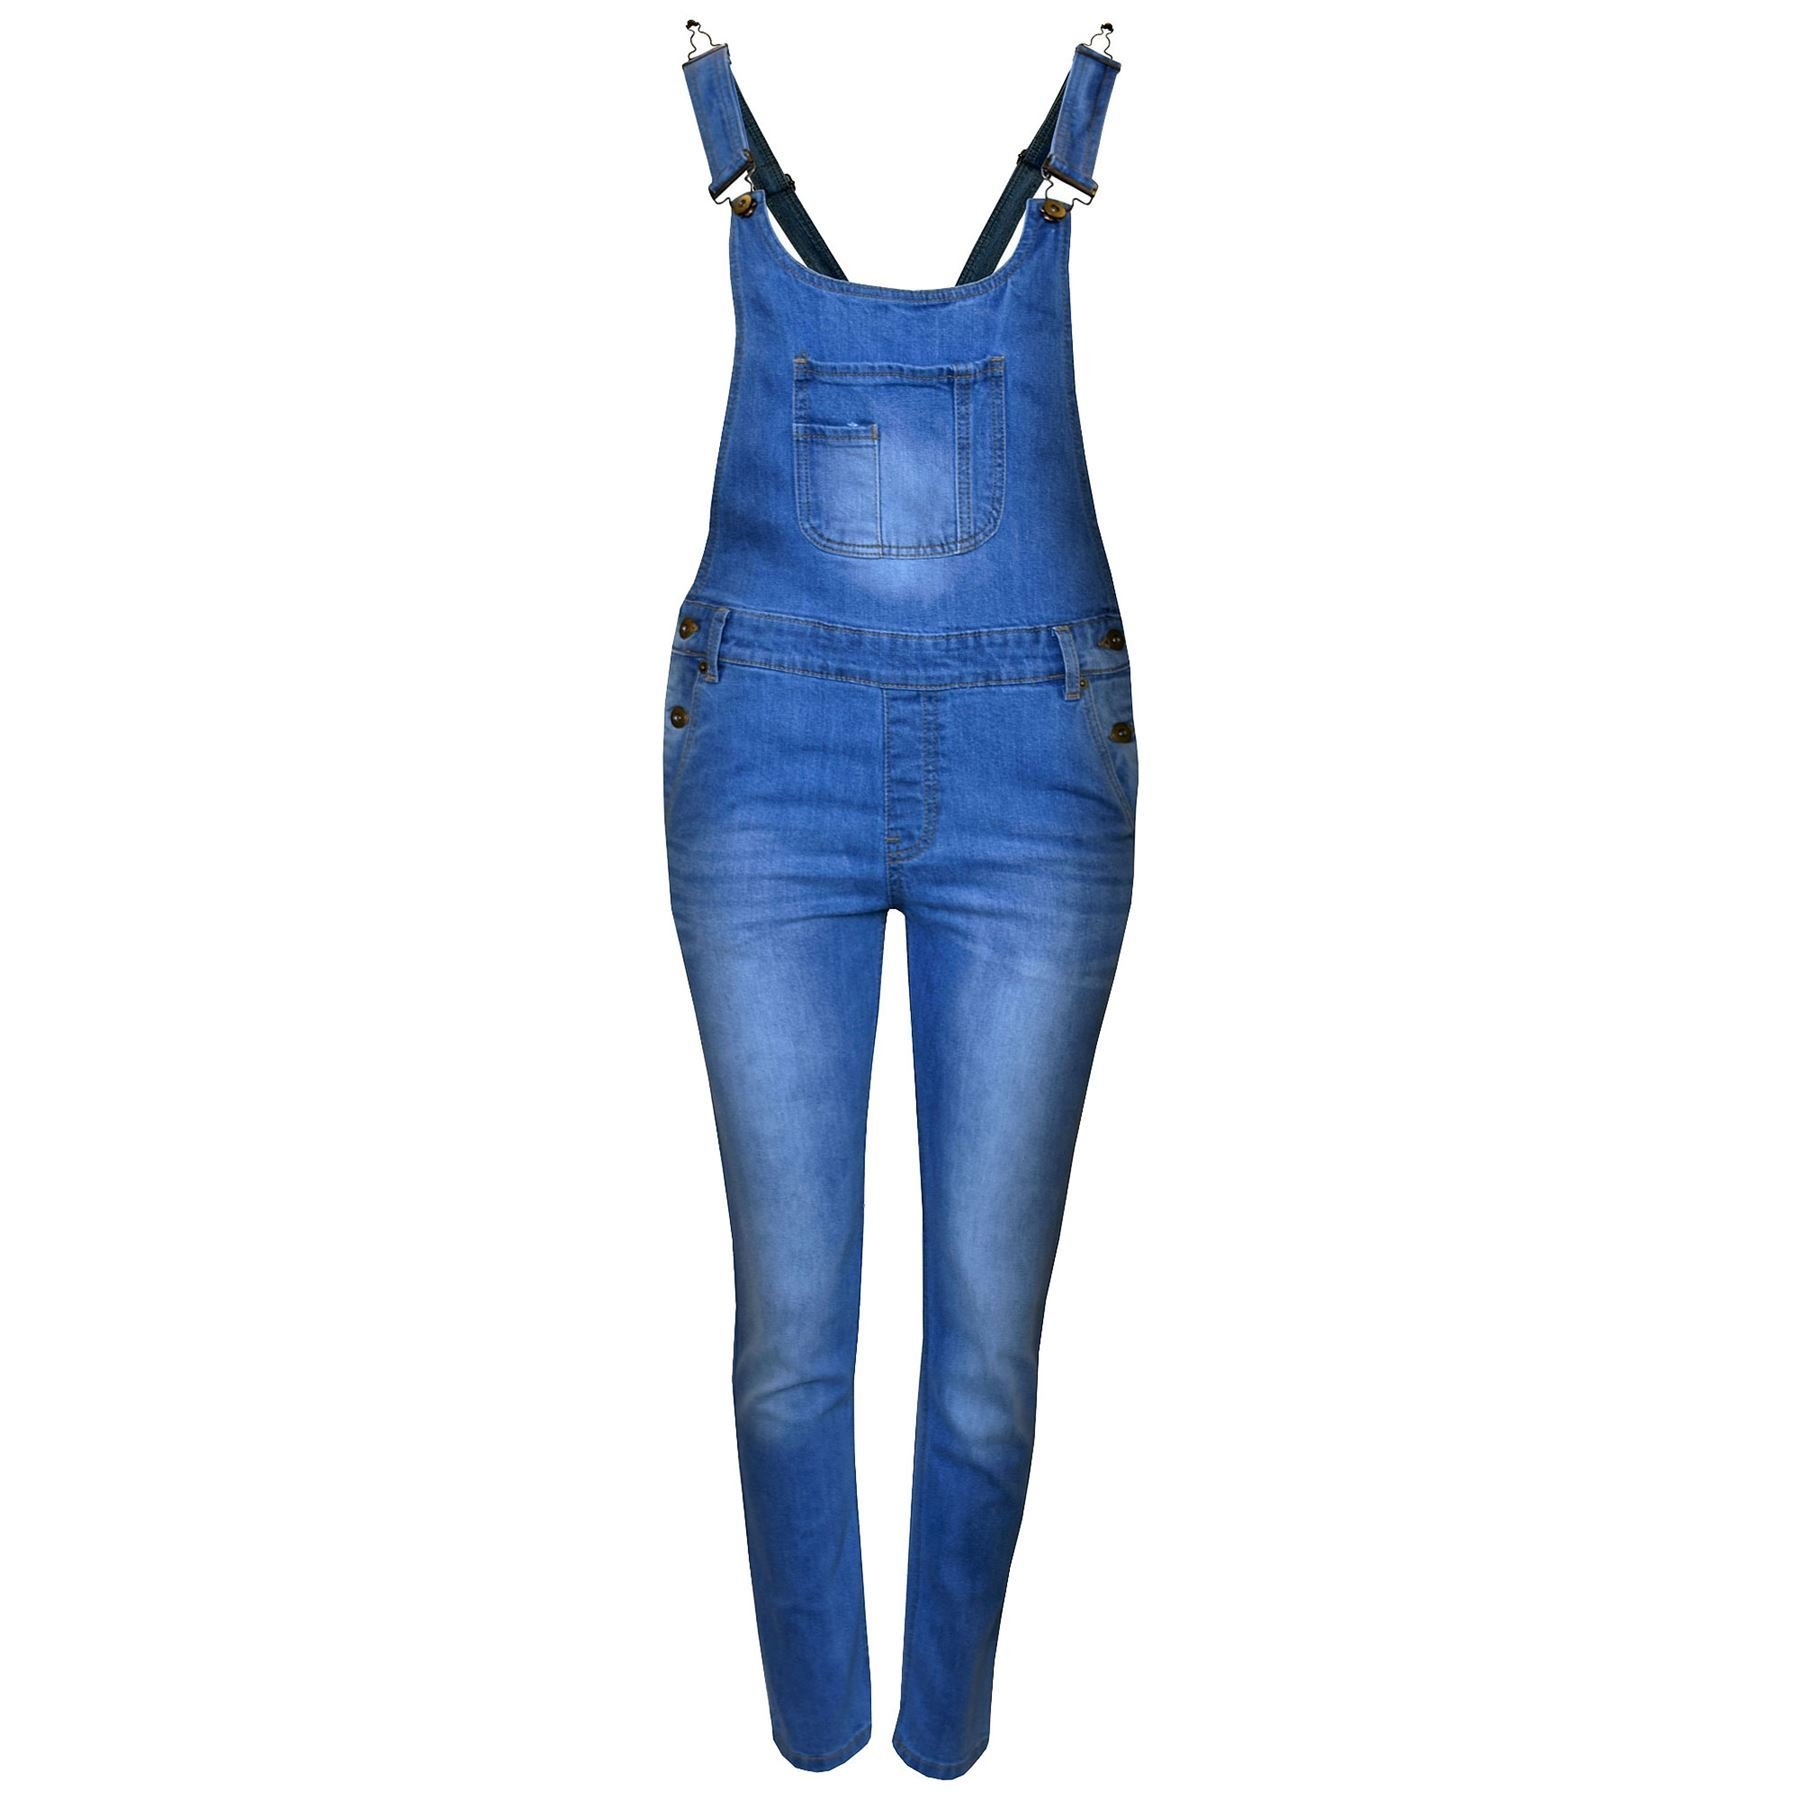 A2Z 4 Kids Kids Girls Dungaree Shorts Designers Denim Ripped Stretch Jeans Overall All in One Jumpsuit Playsuit Age 5 6 7 8 9 10 11 12 13 Years